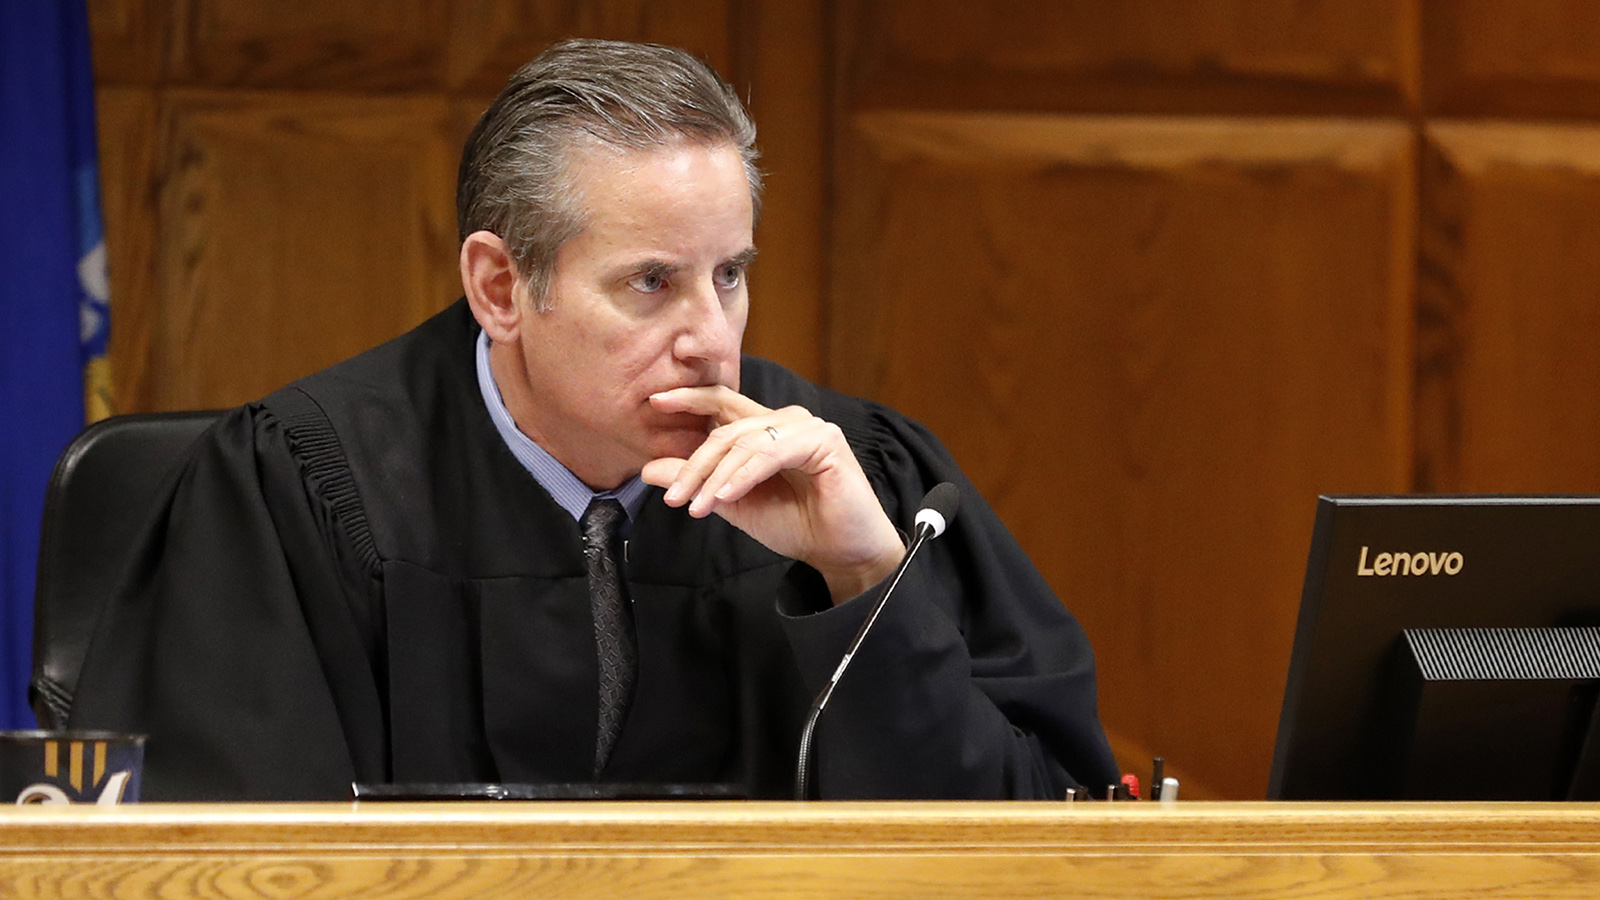 Outagamie County Circuit Judge Vincent Biskupic sits at a bench in a courtroom